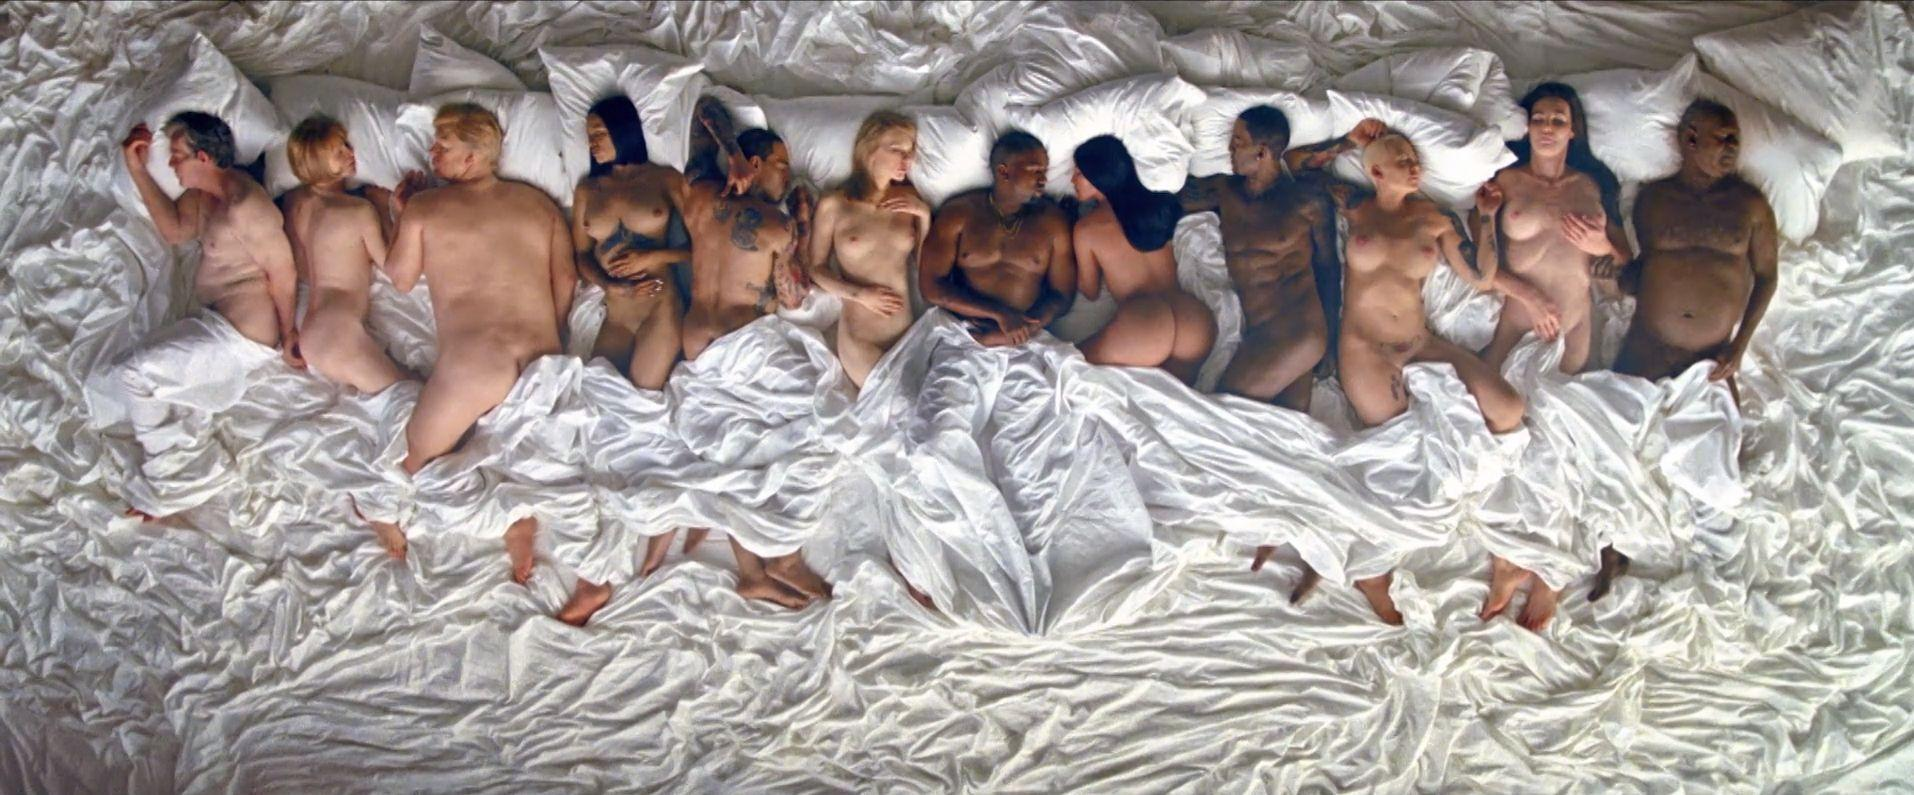 Painter who inspired Kanye West's 'Famous' music video destroys Lena Dunham's critique